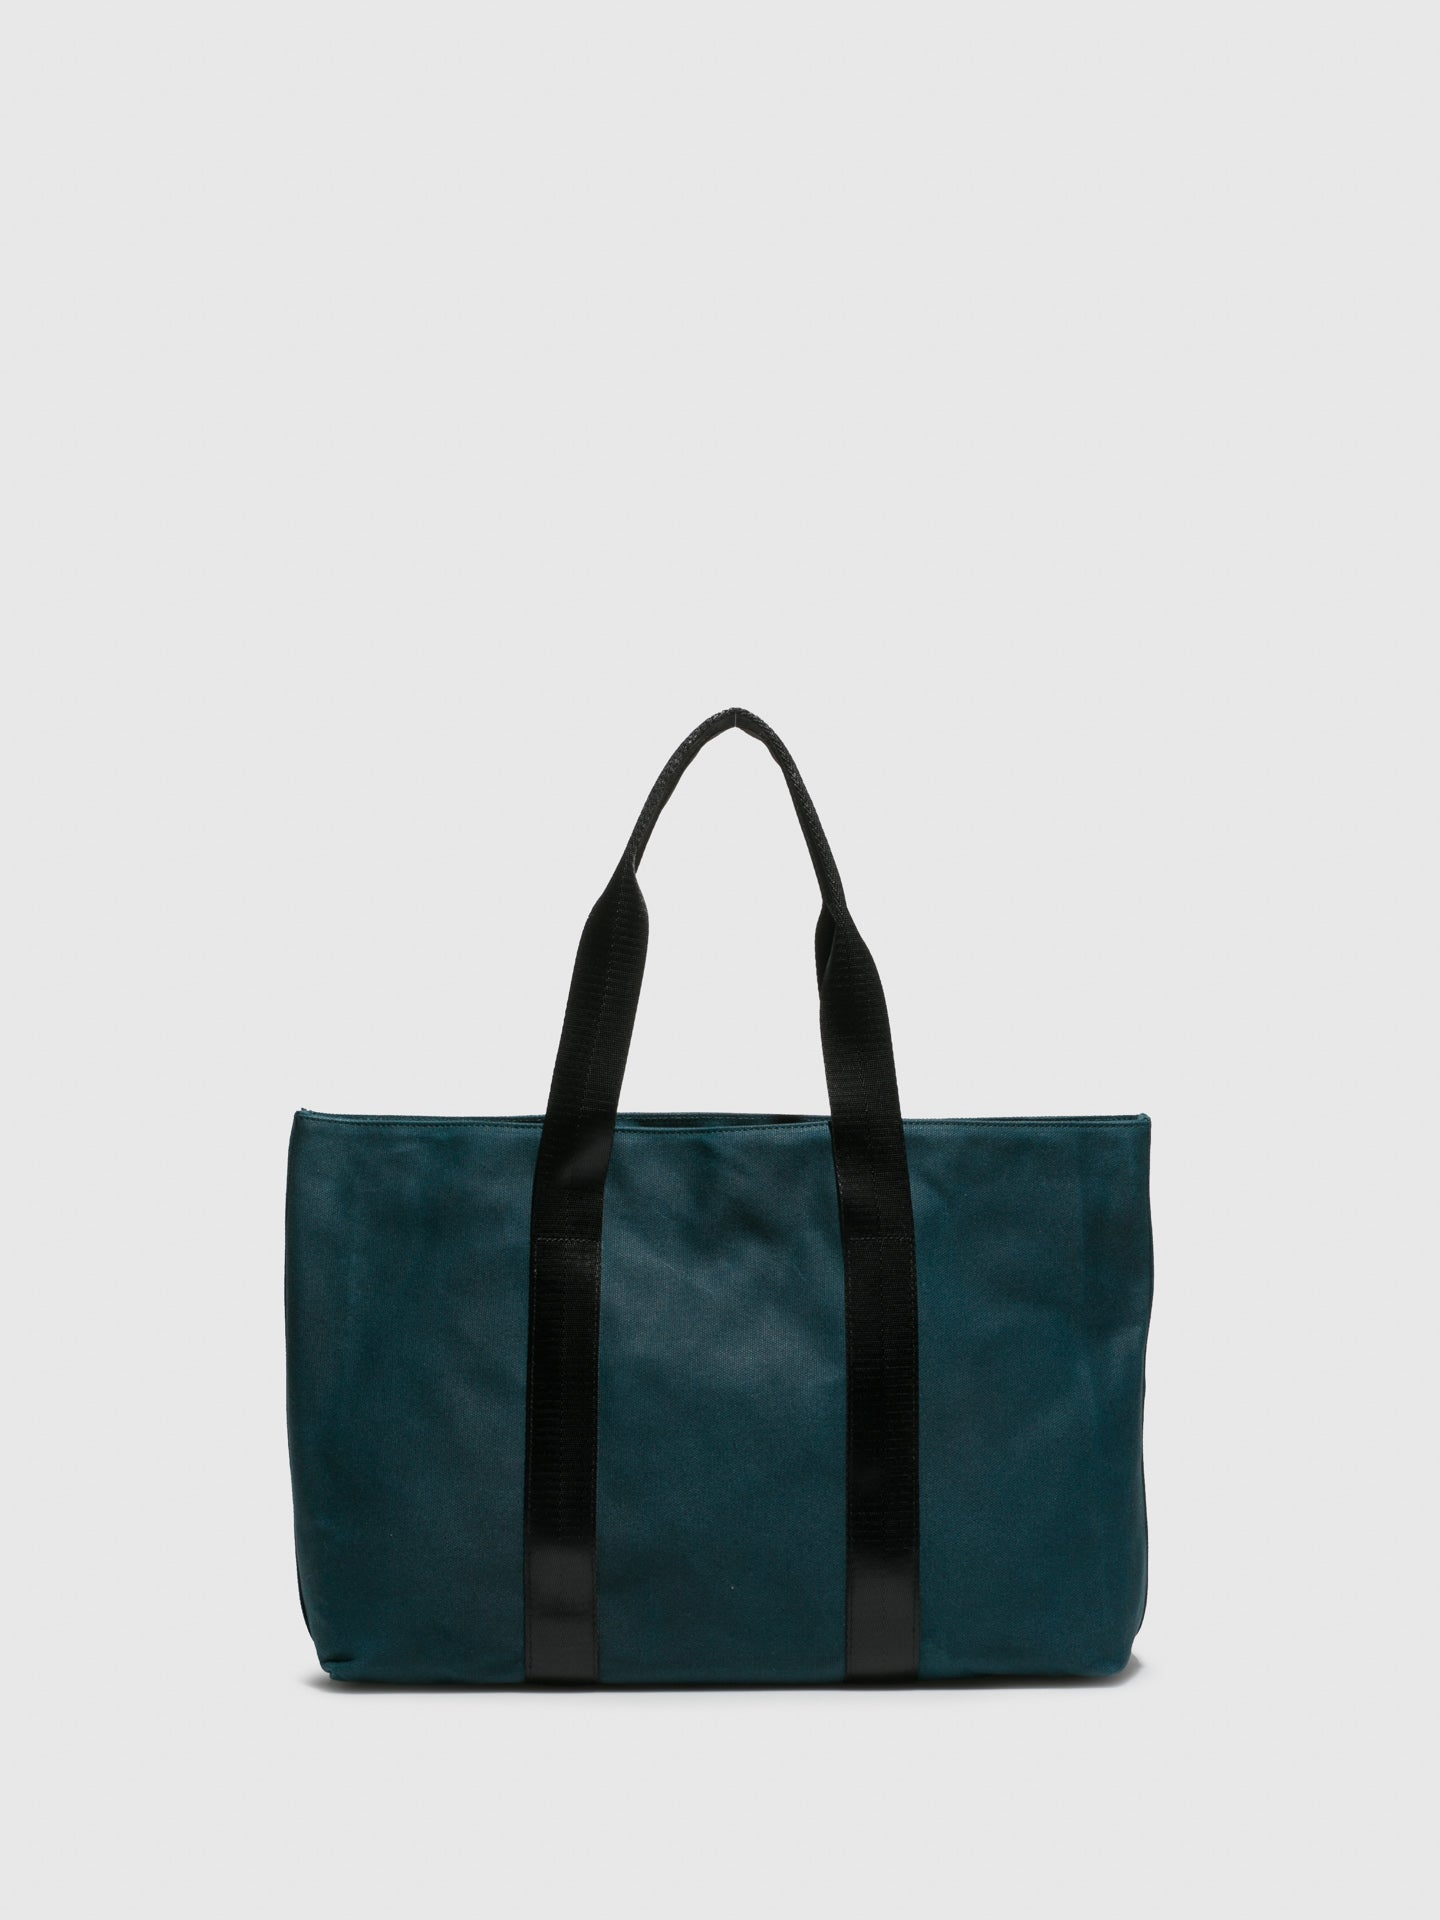 Fly London Tote Bags AKER703FLY BENNET TEAL